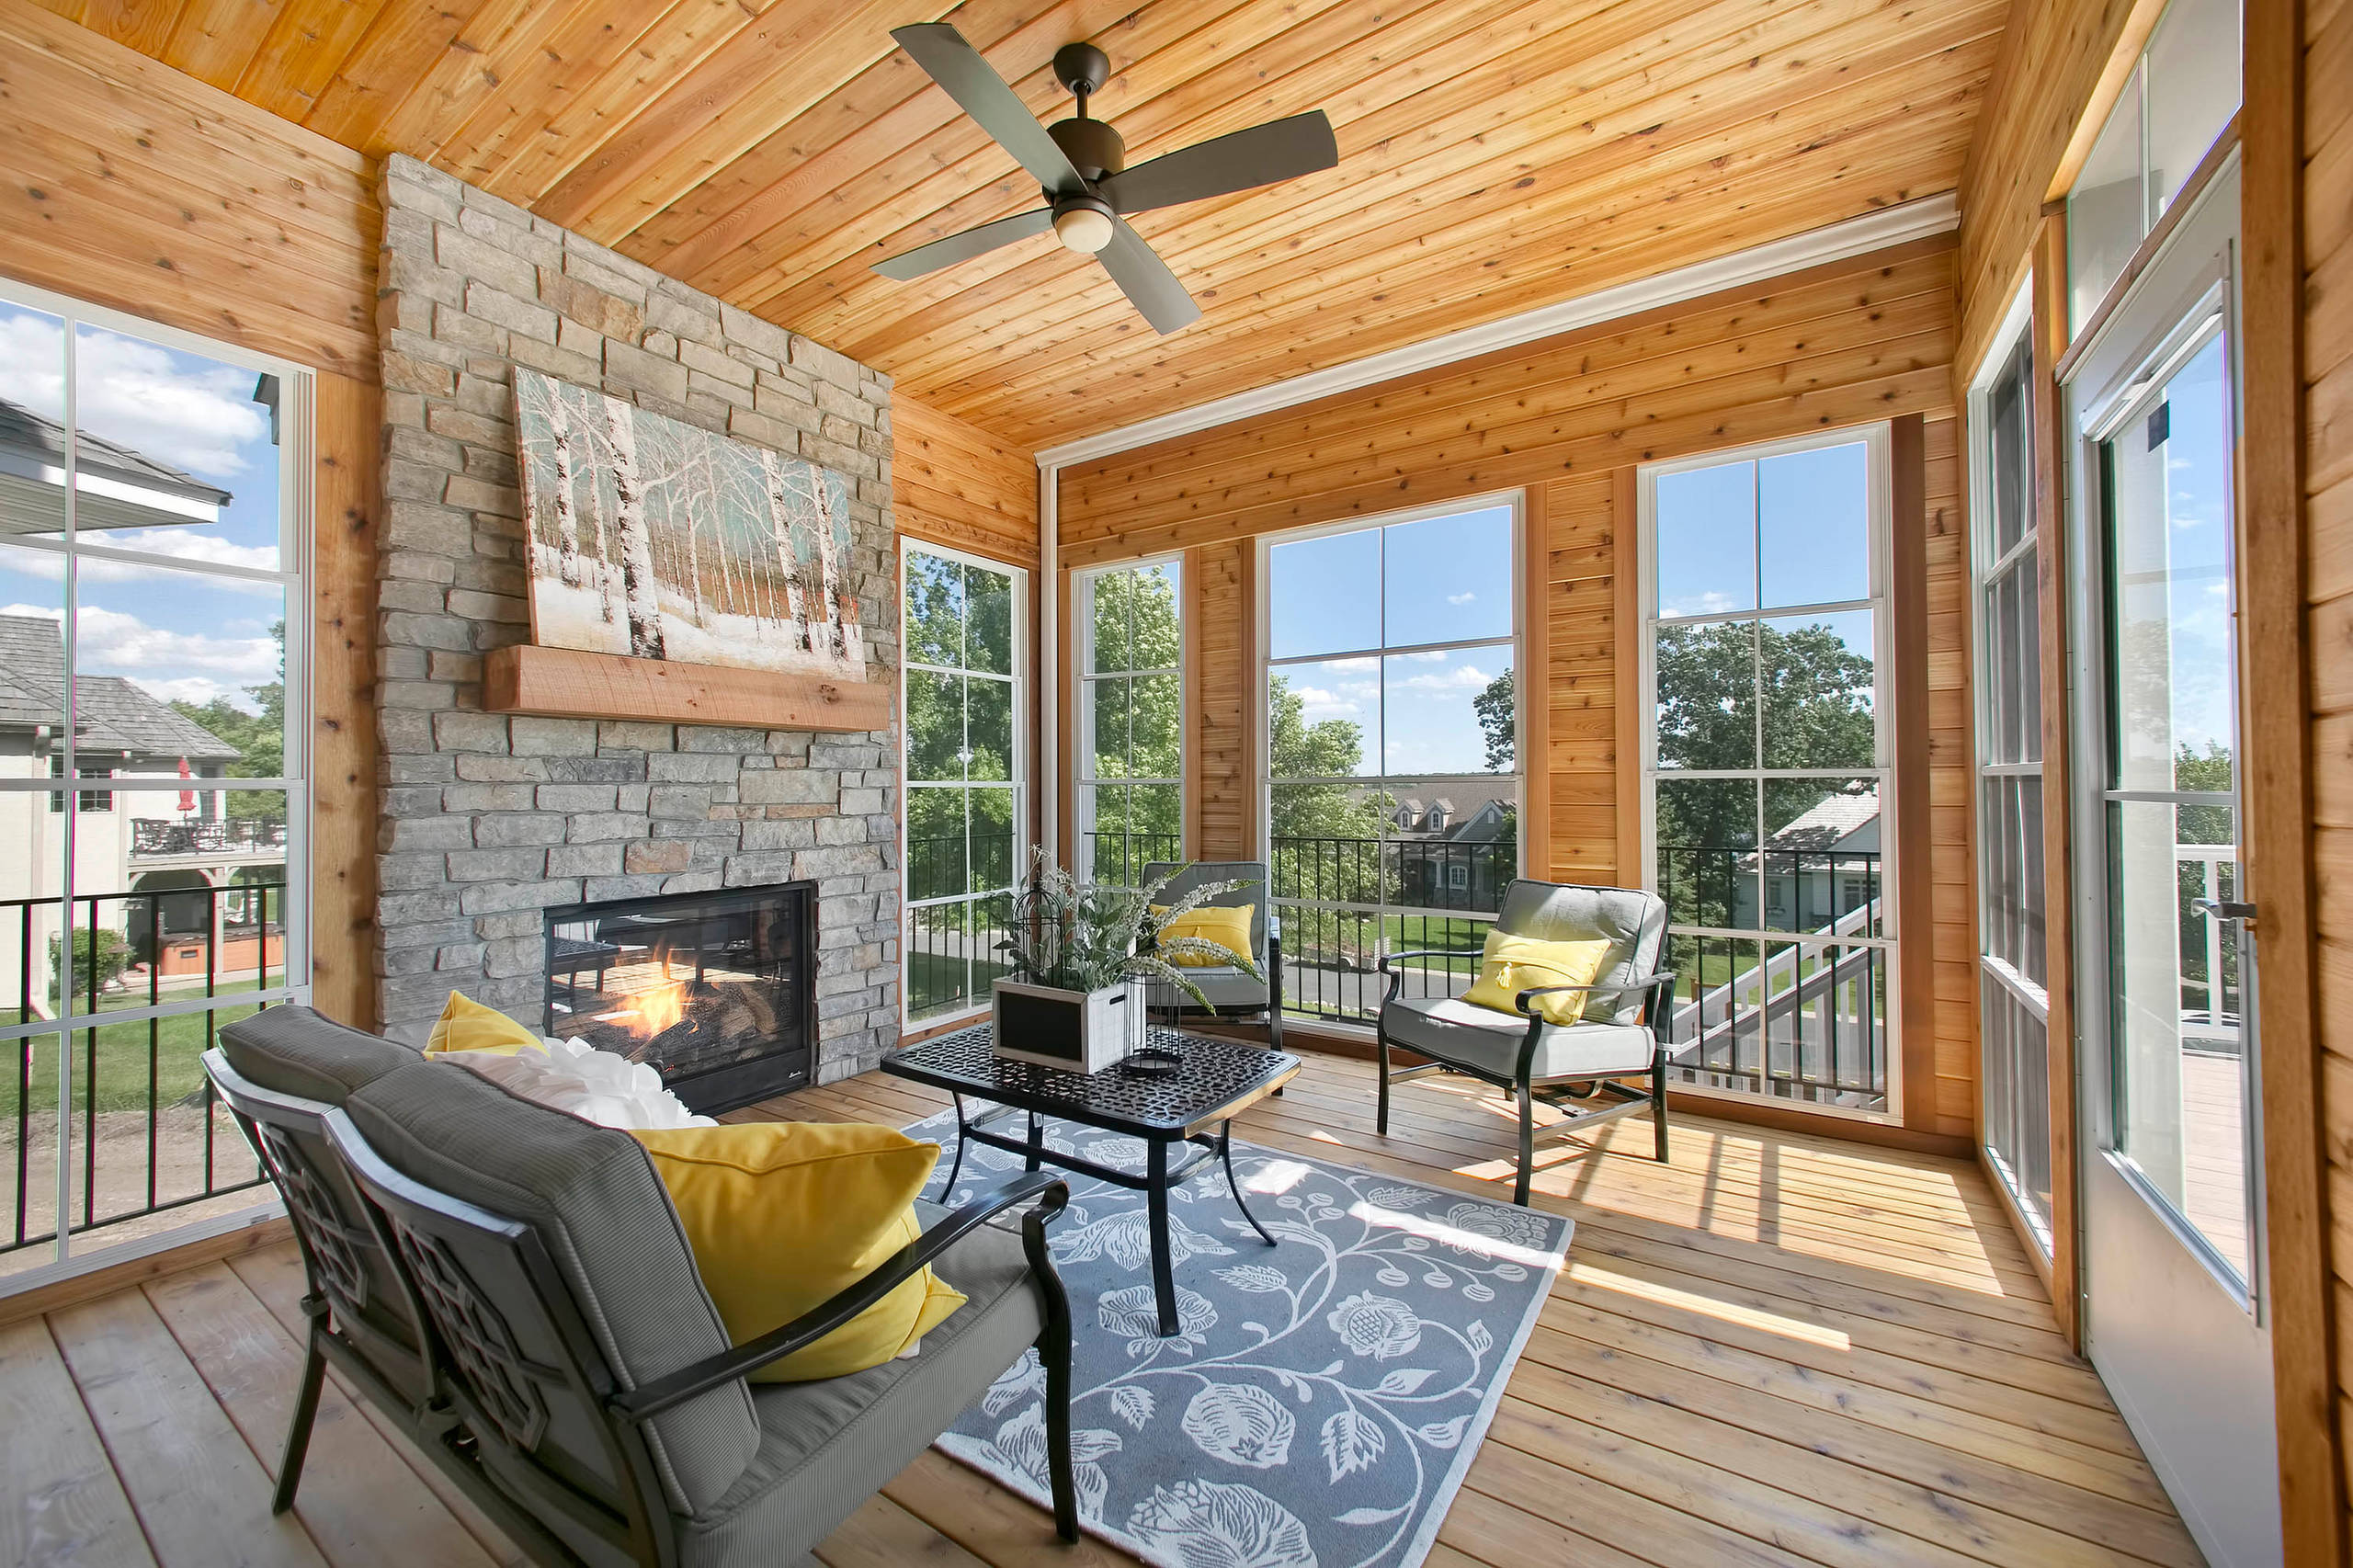 17 Unbelievable Rustic Porch Designs That Will Make Your ...